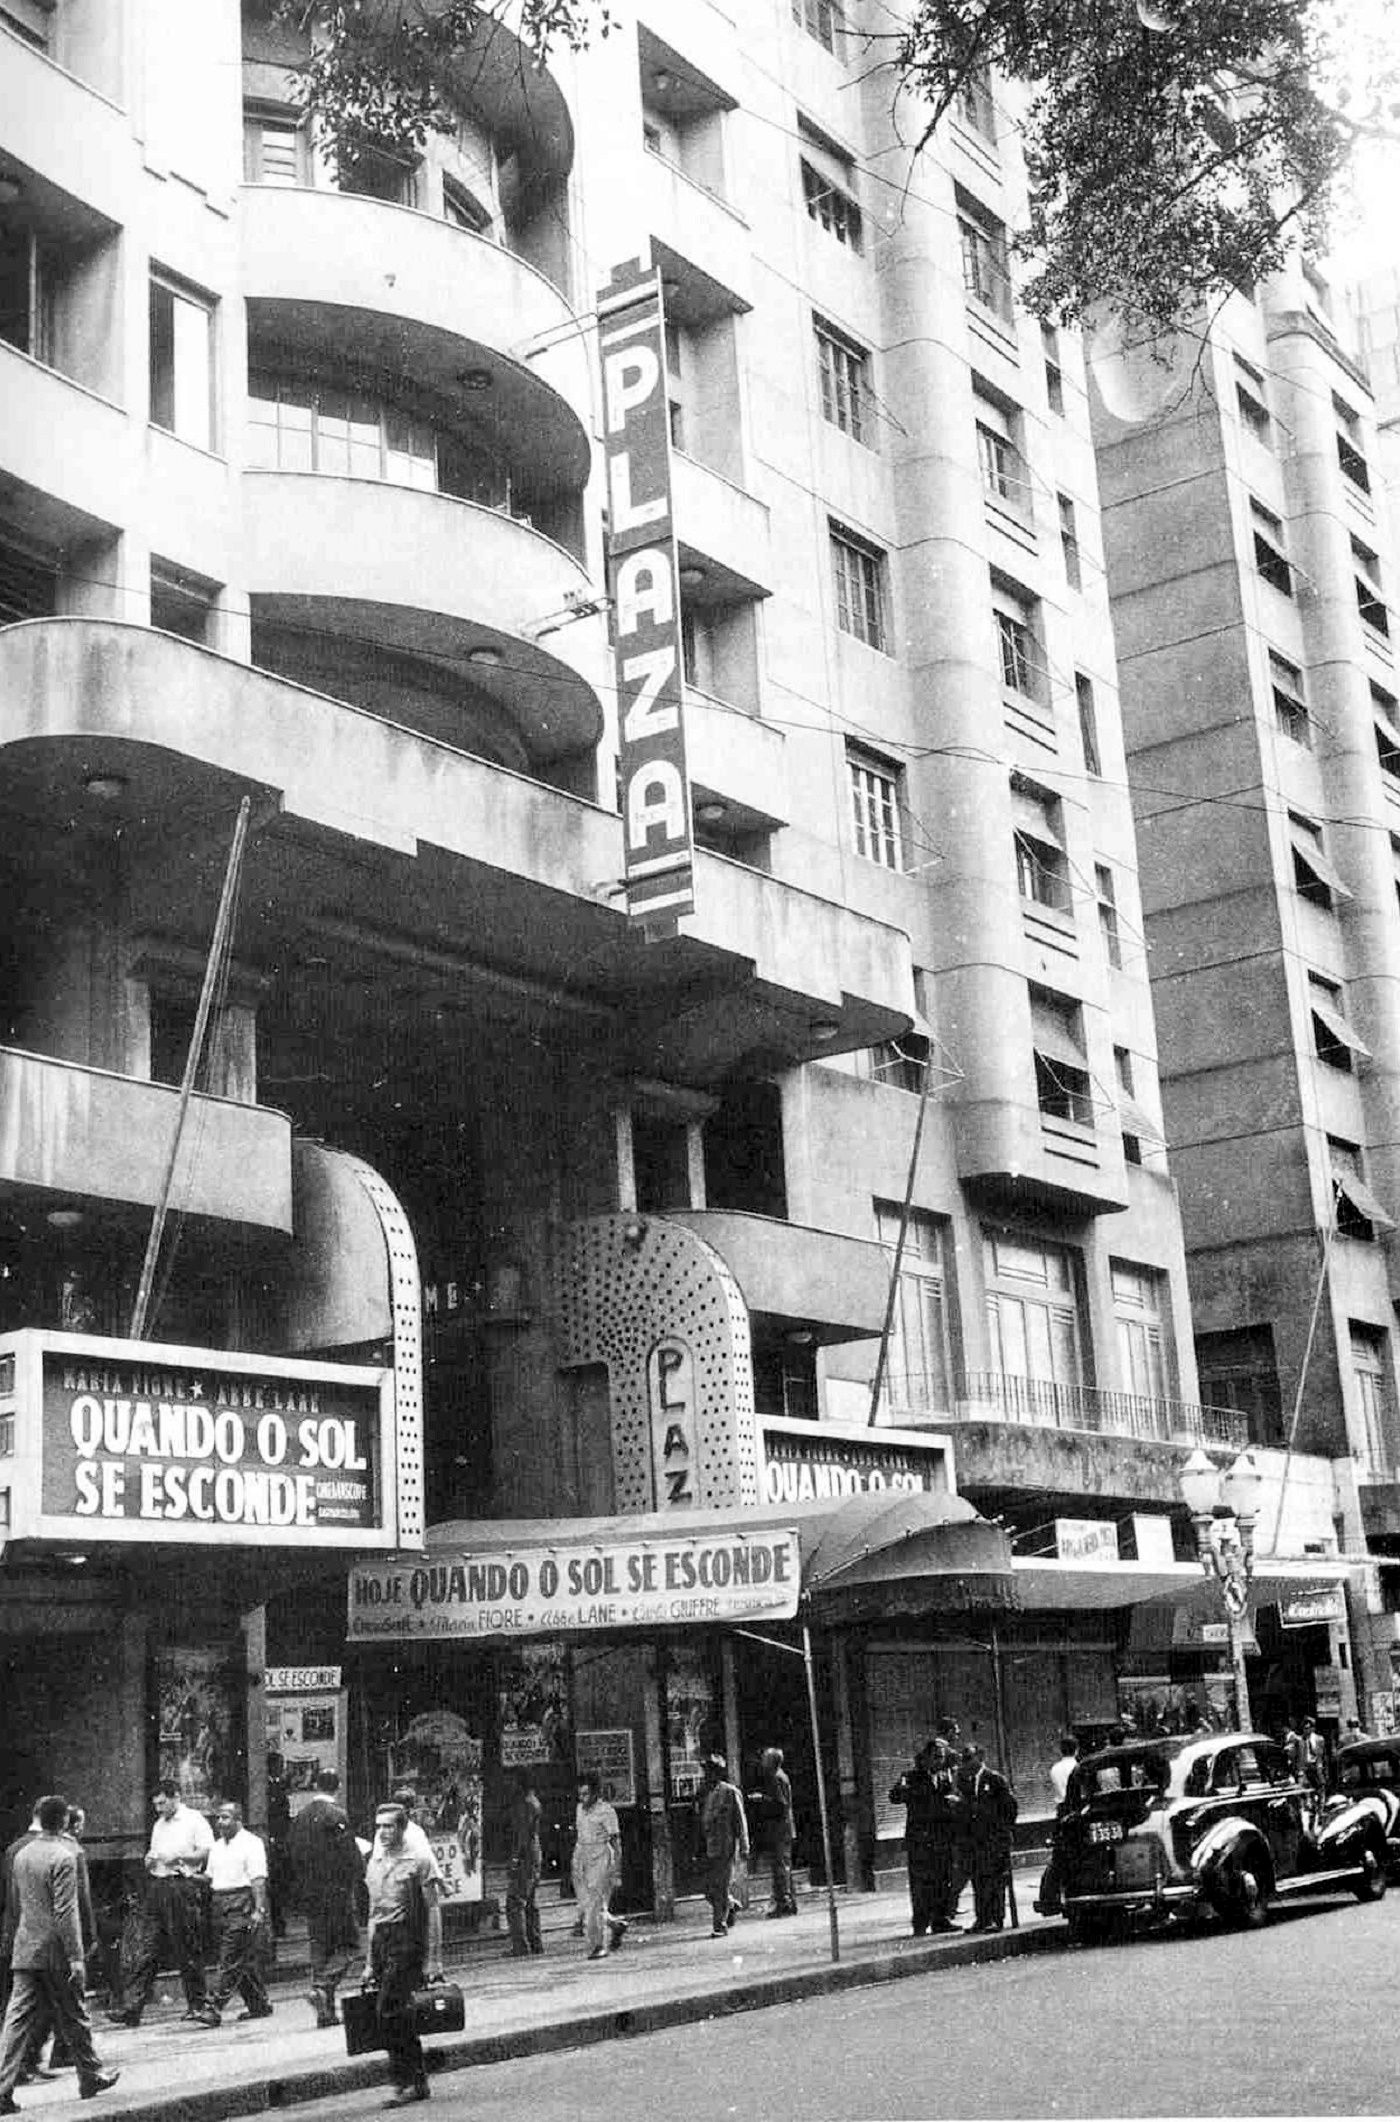 Cinema Plaza – 1937 http://www.skyscrapercity.com/showthread.php?t=877776&page=60